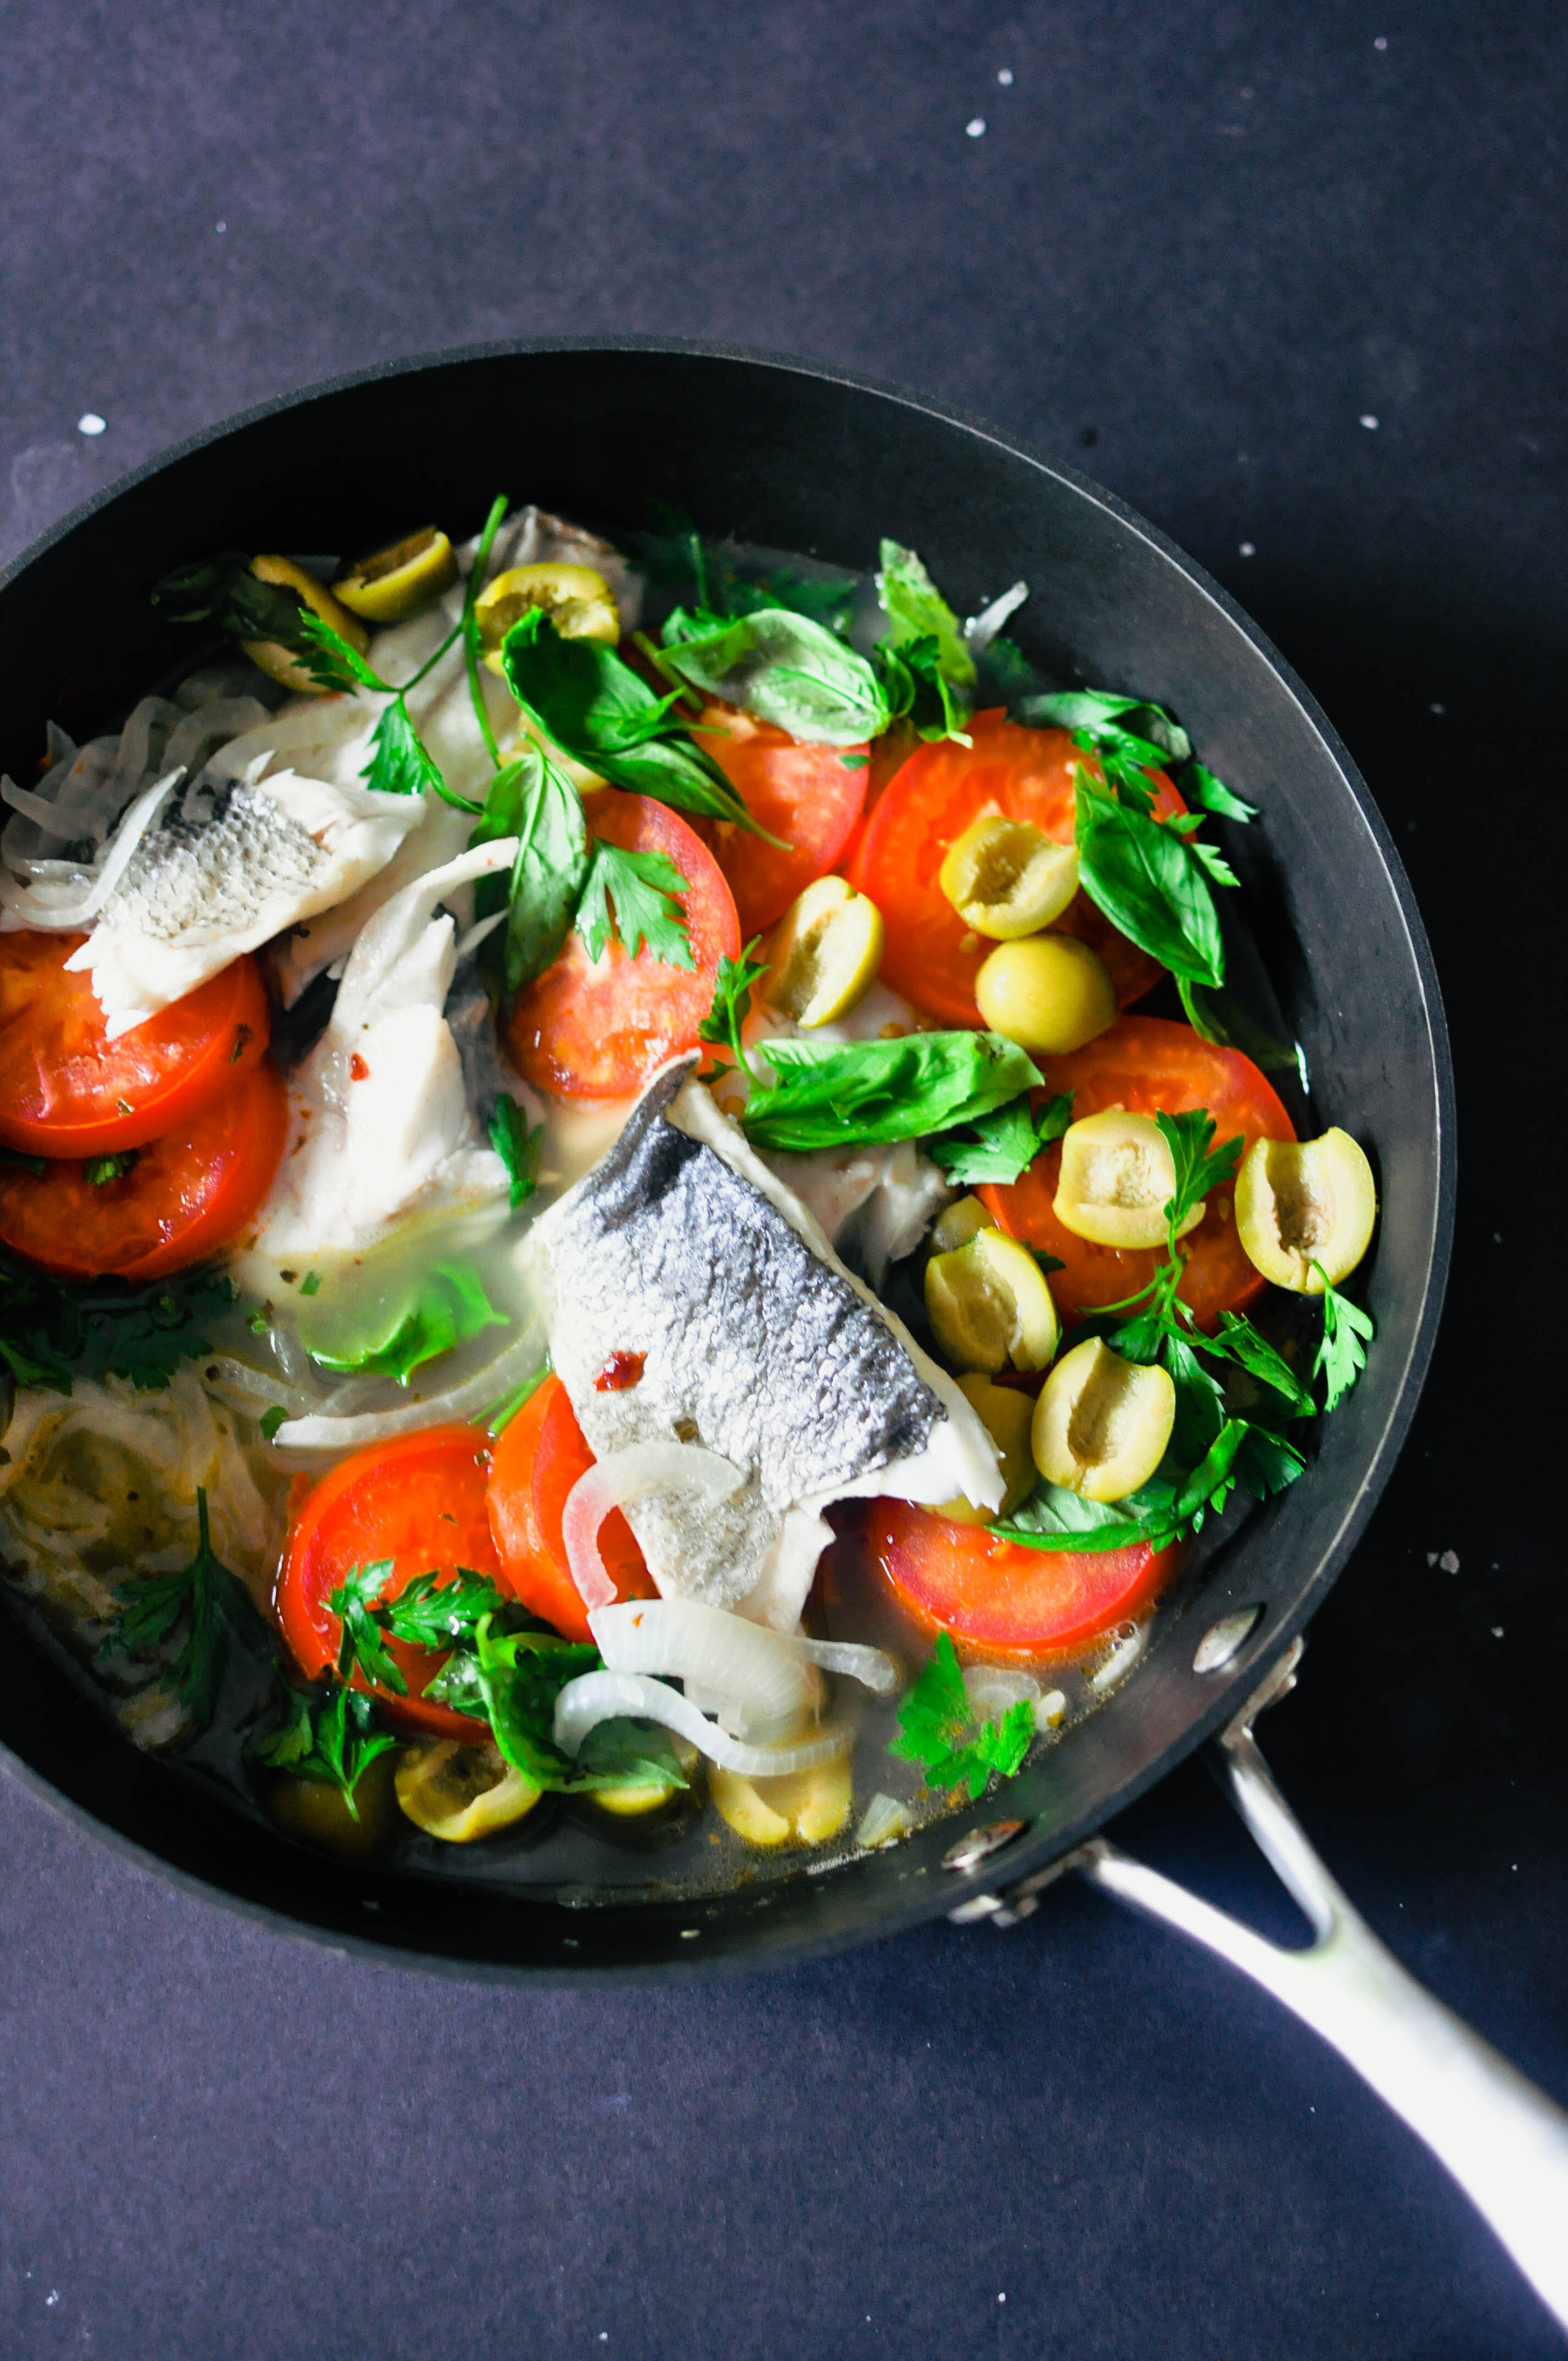 Poached sea bass recipe with tomatoes, olives, and onions | This Healthy Table